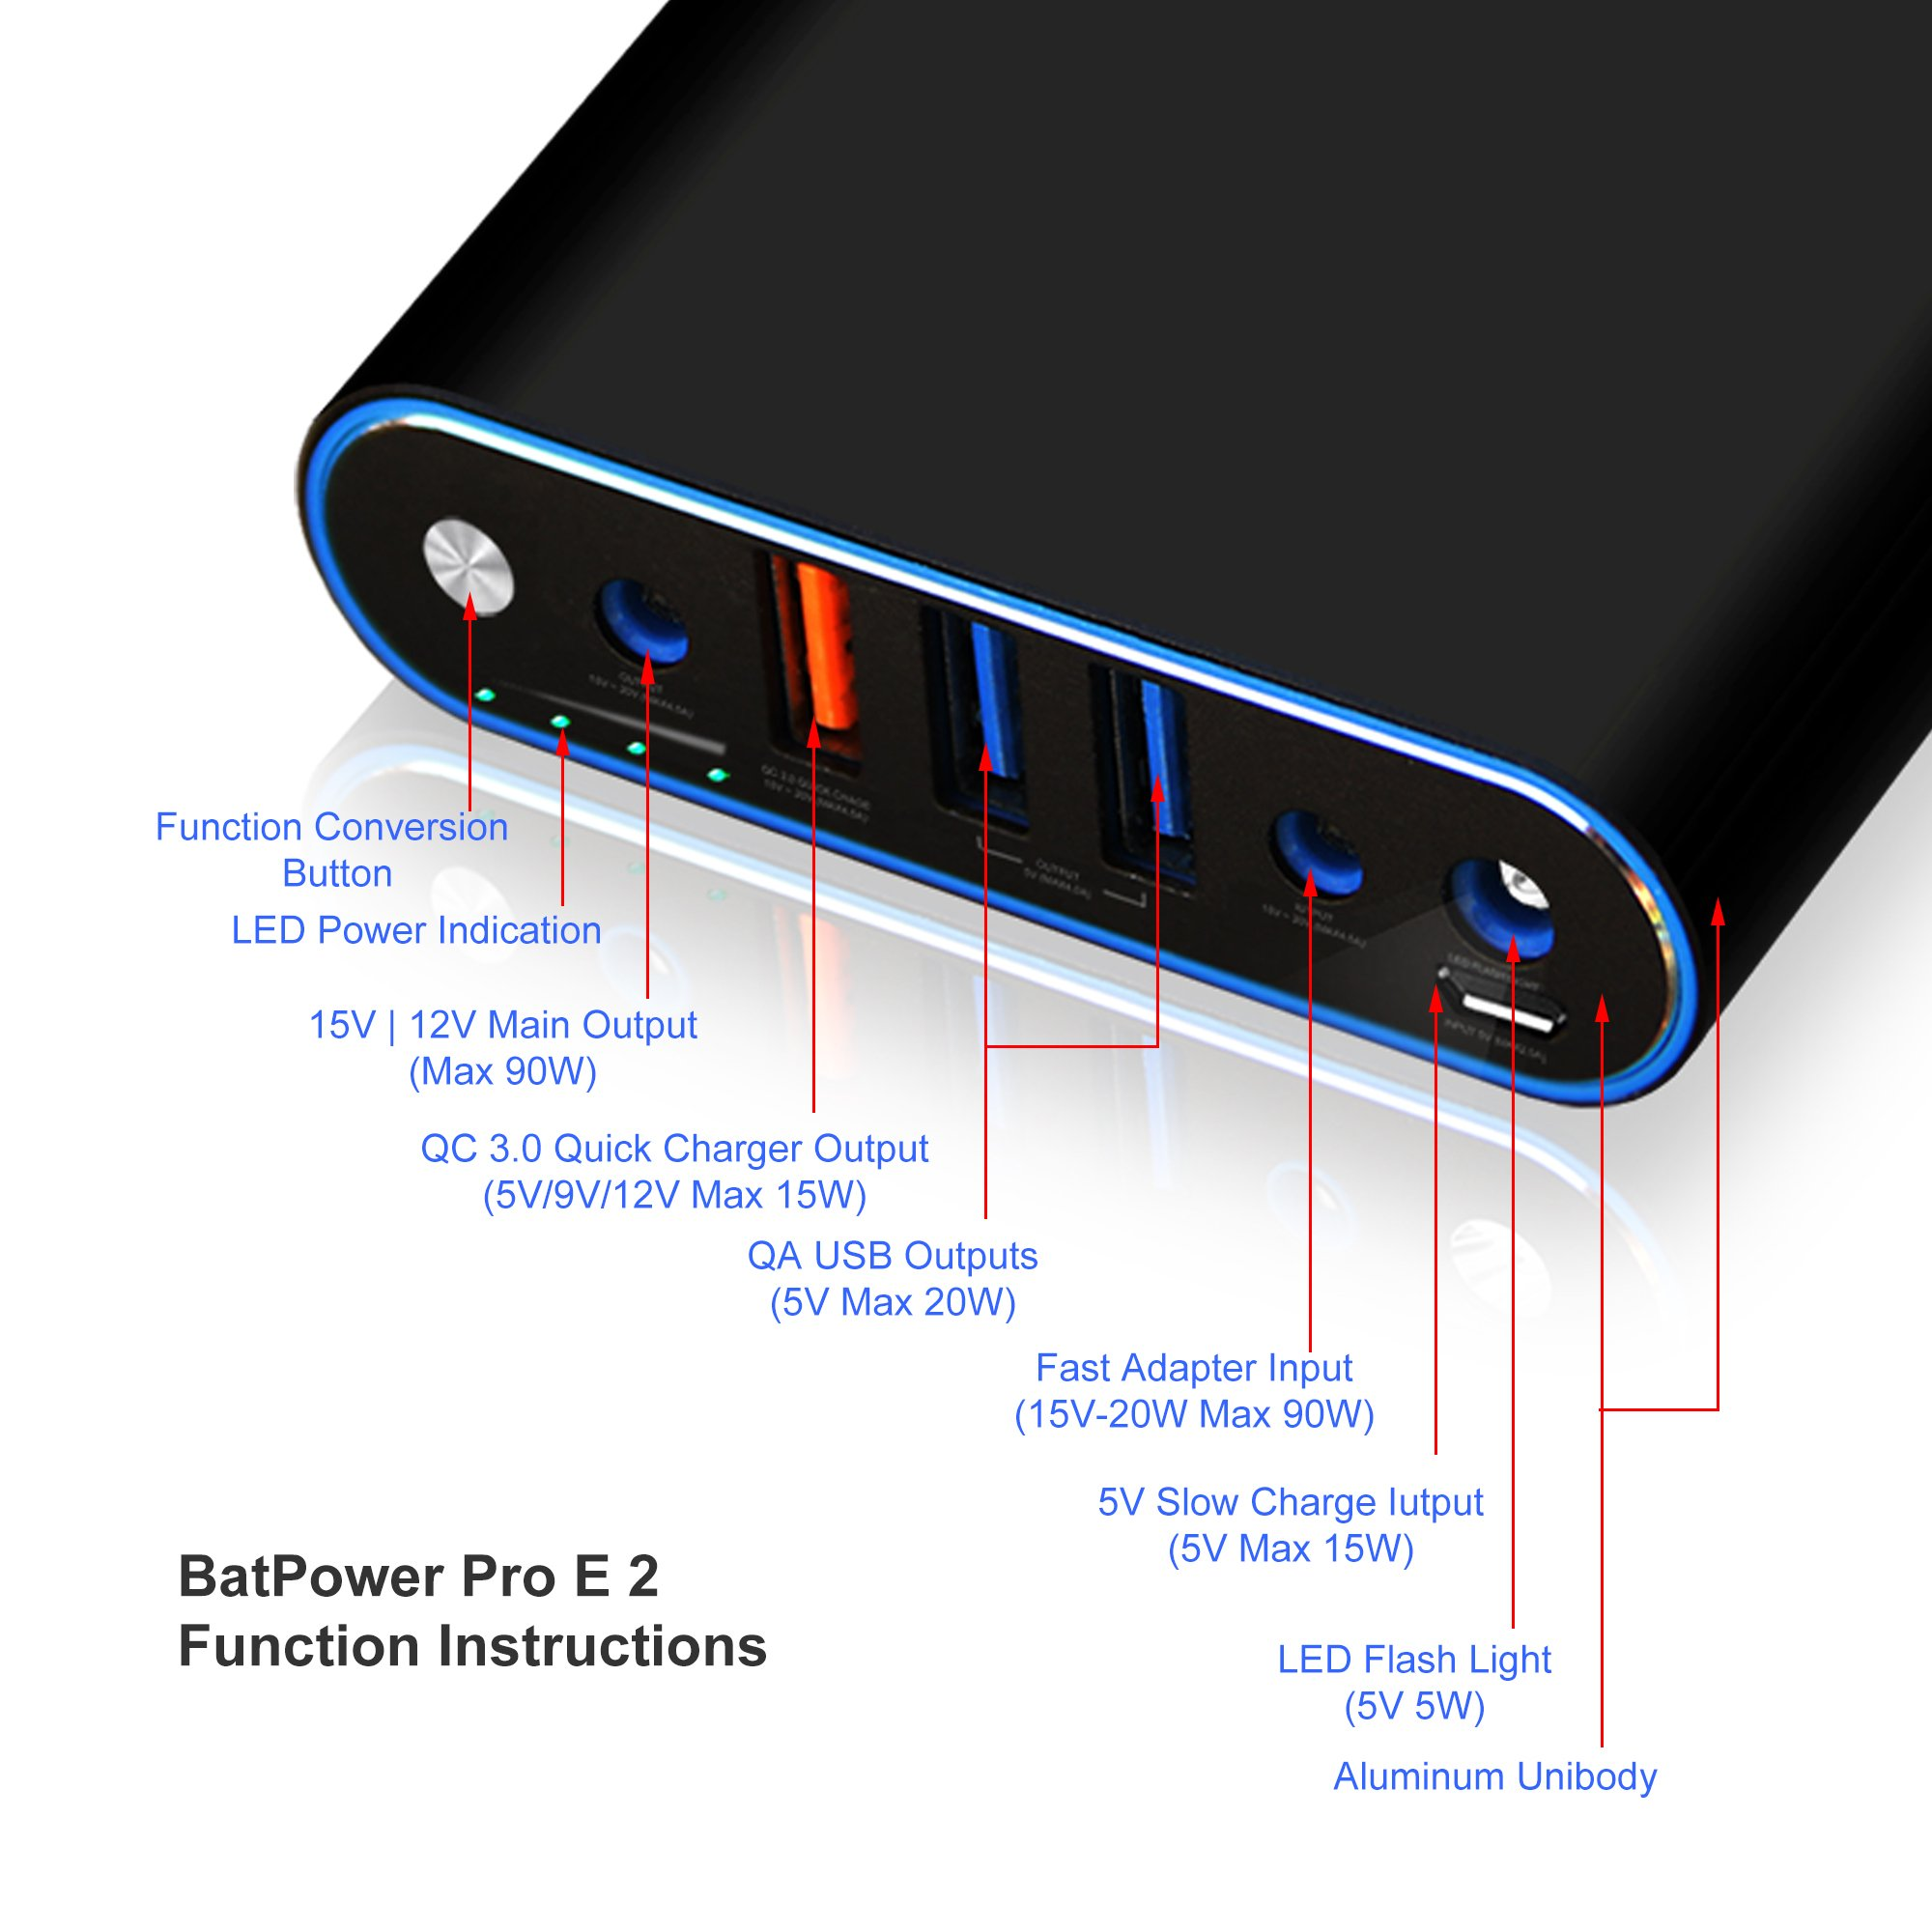 BatPower ProE 2 ES10 Portable Charger External Battery Power Bank for Surface Laptop, Surface Book, Book 2, Surface Pro 4 / 3 / 2 and RT, USB QC 3.0 Fast Charging for Tablet or Smartphone -148Wh by BatPower (Image #3)